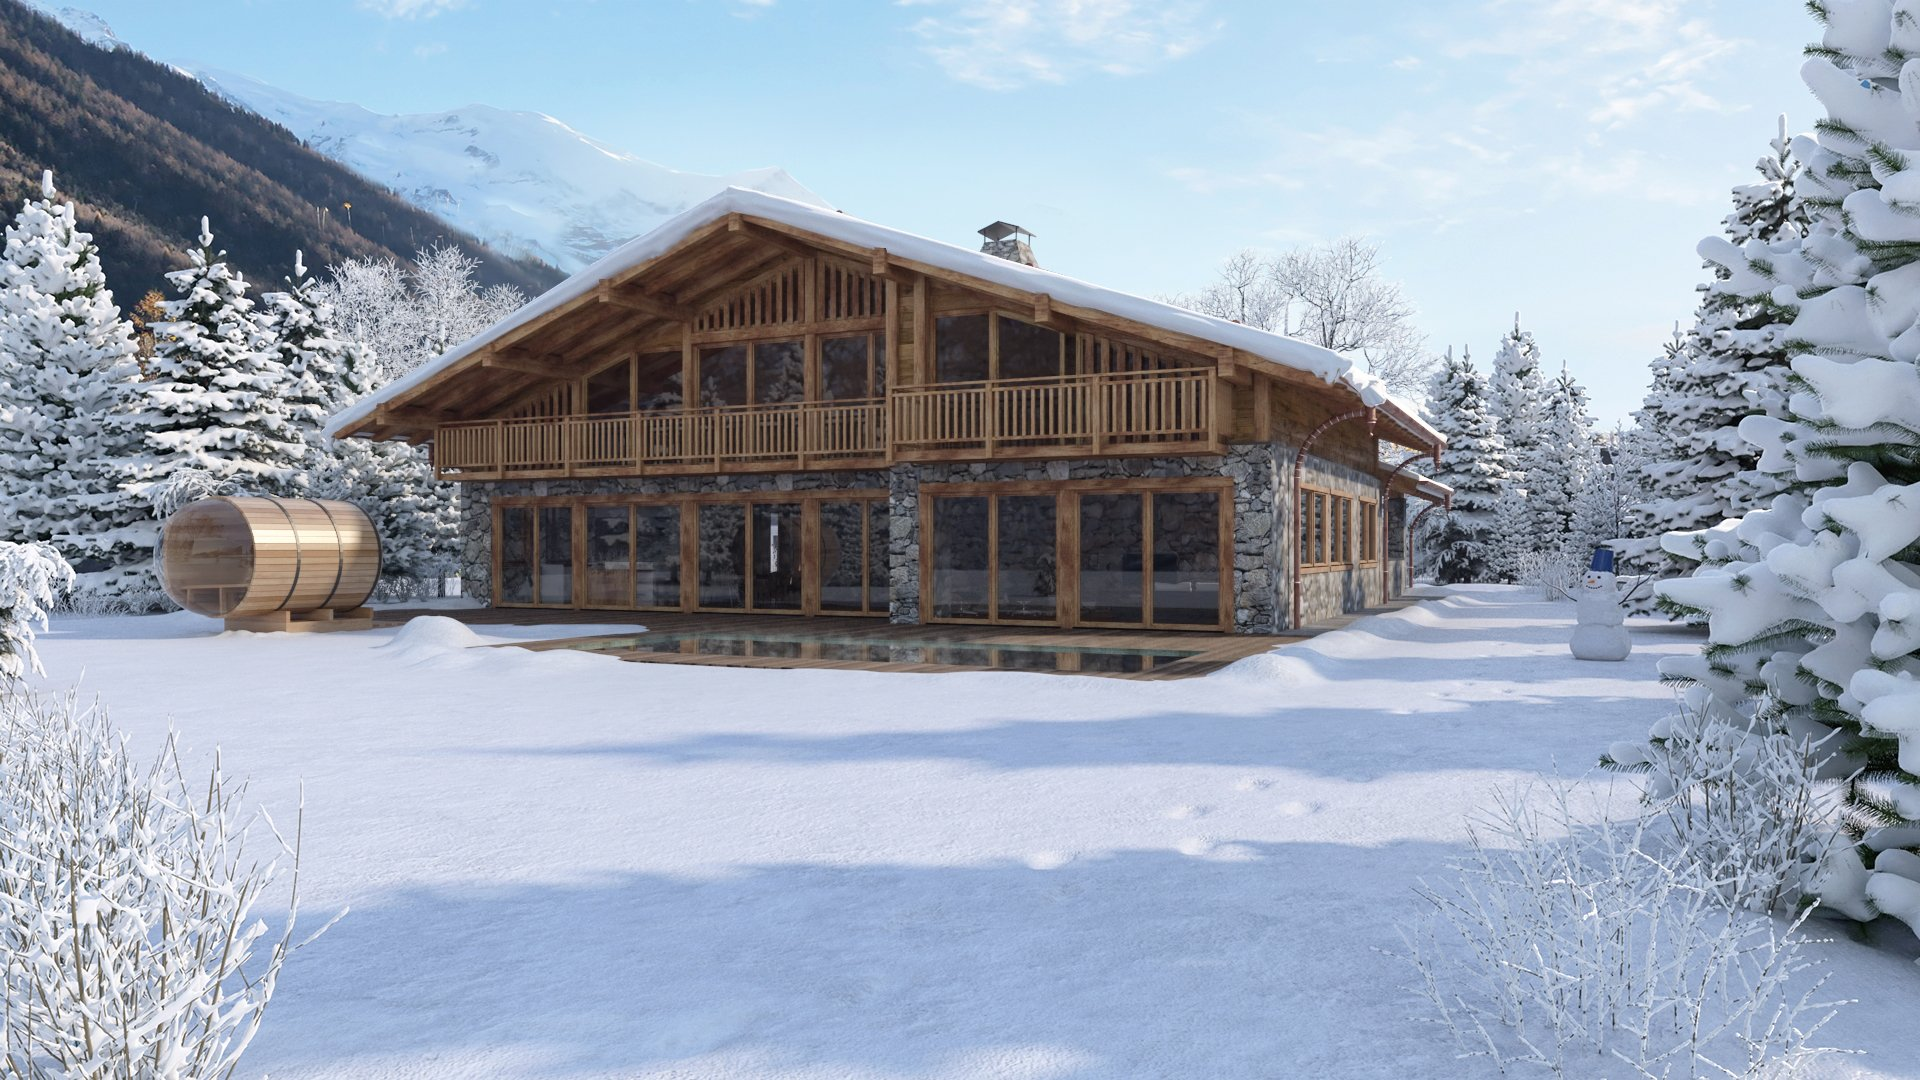 Chalet, walking distance of the center of Chamonix.